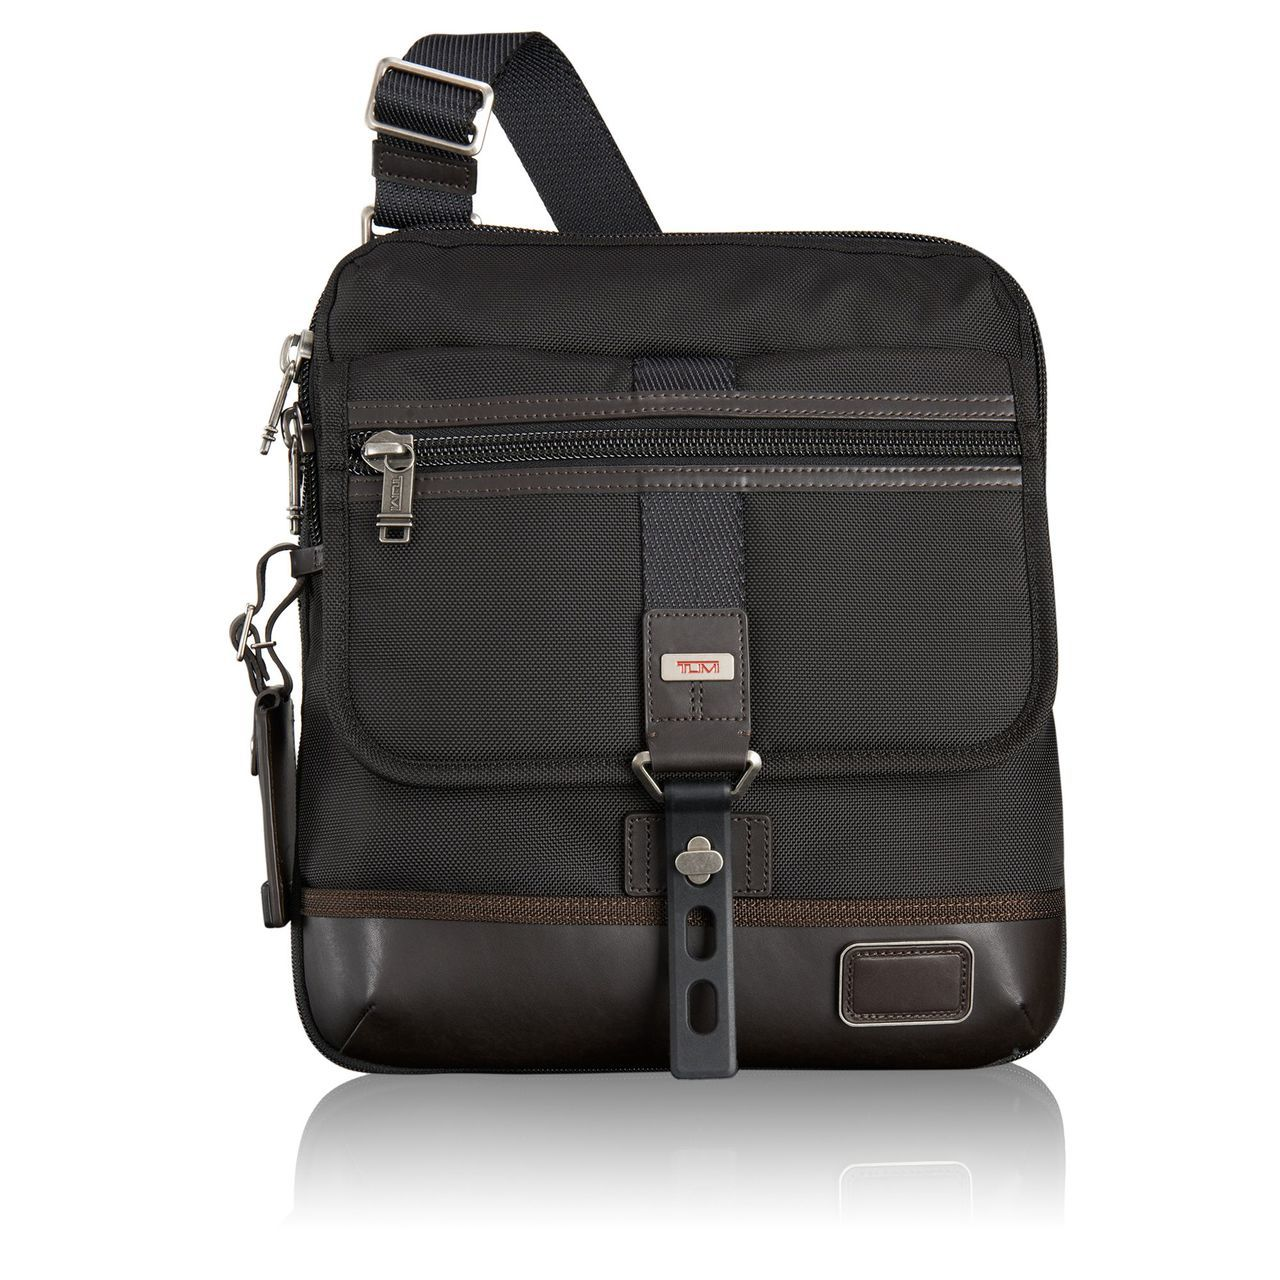 Elegant Tumi Alpha Bravo for Cool Travel Bag Ideas: Tumi Alpha Bravo | Tumi Alpha Bravo Sale | Tumi Alpha Bravo Carry On